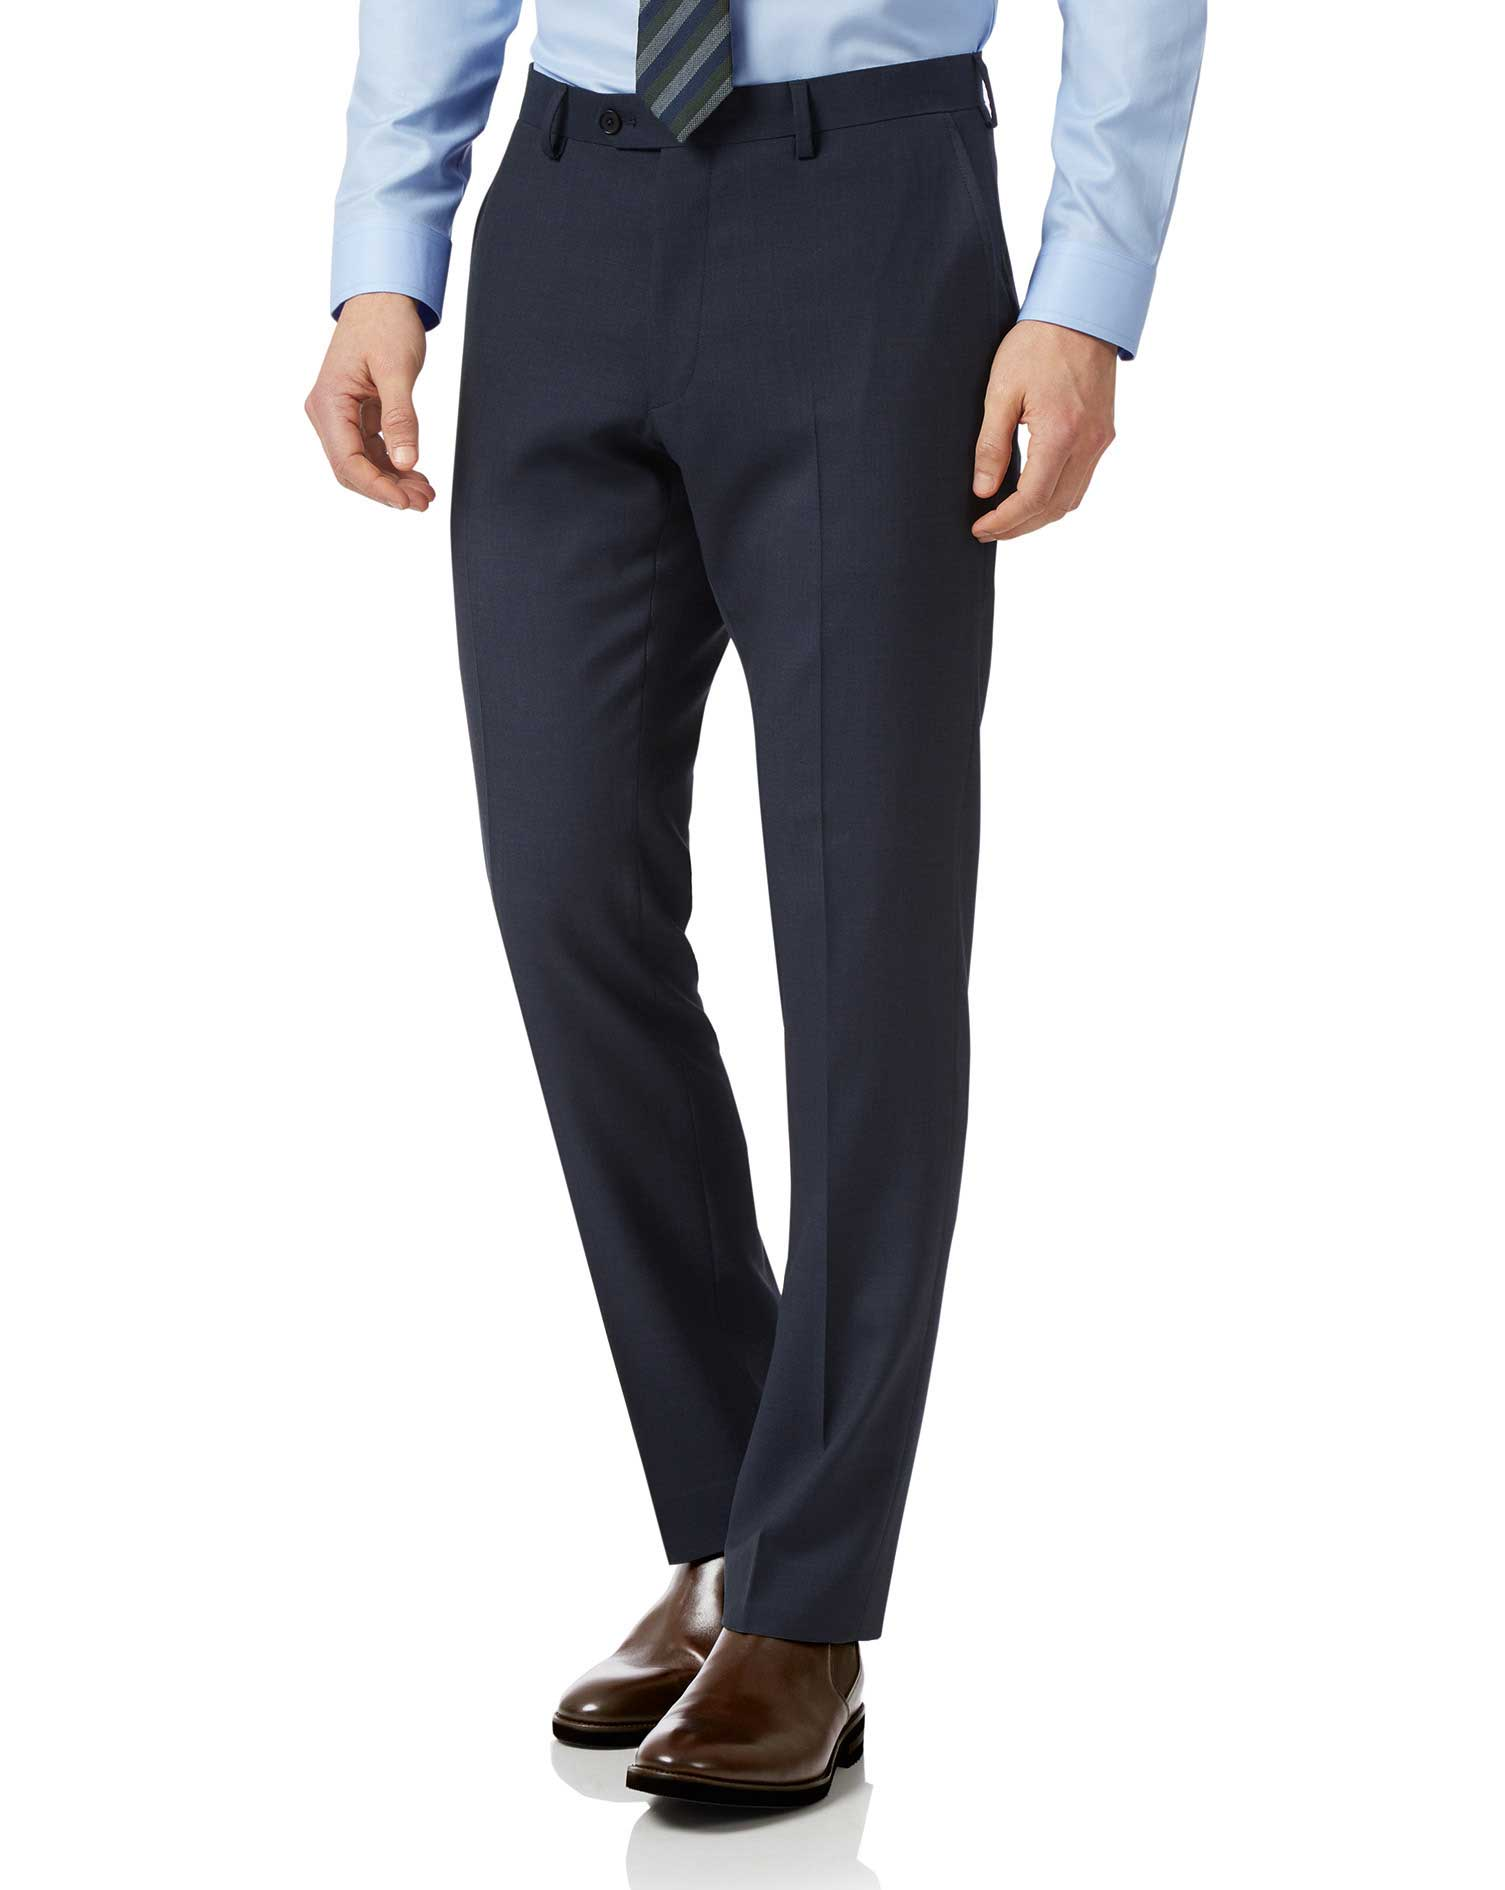 Navy Slim Fit Sharkskin Travel Suit Trousers Size W34 L34 by Charles Tyrwhitt